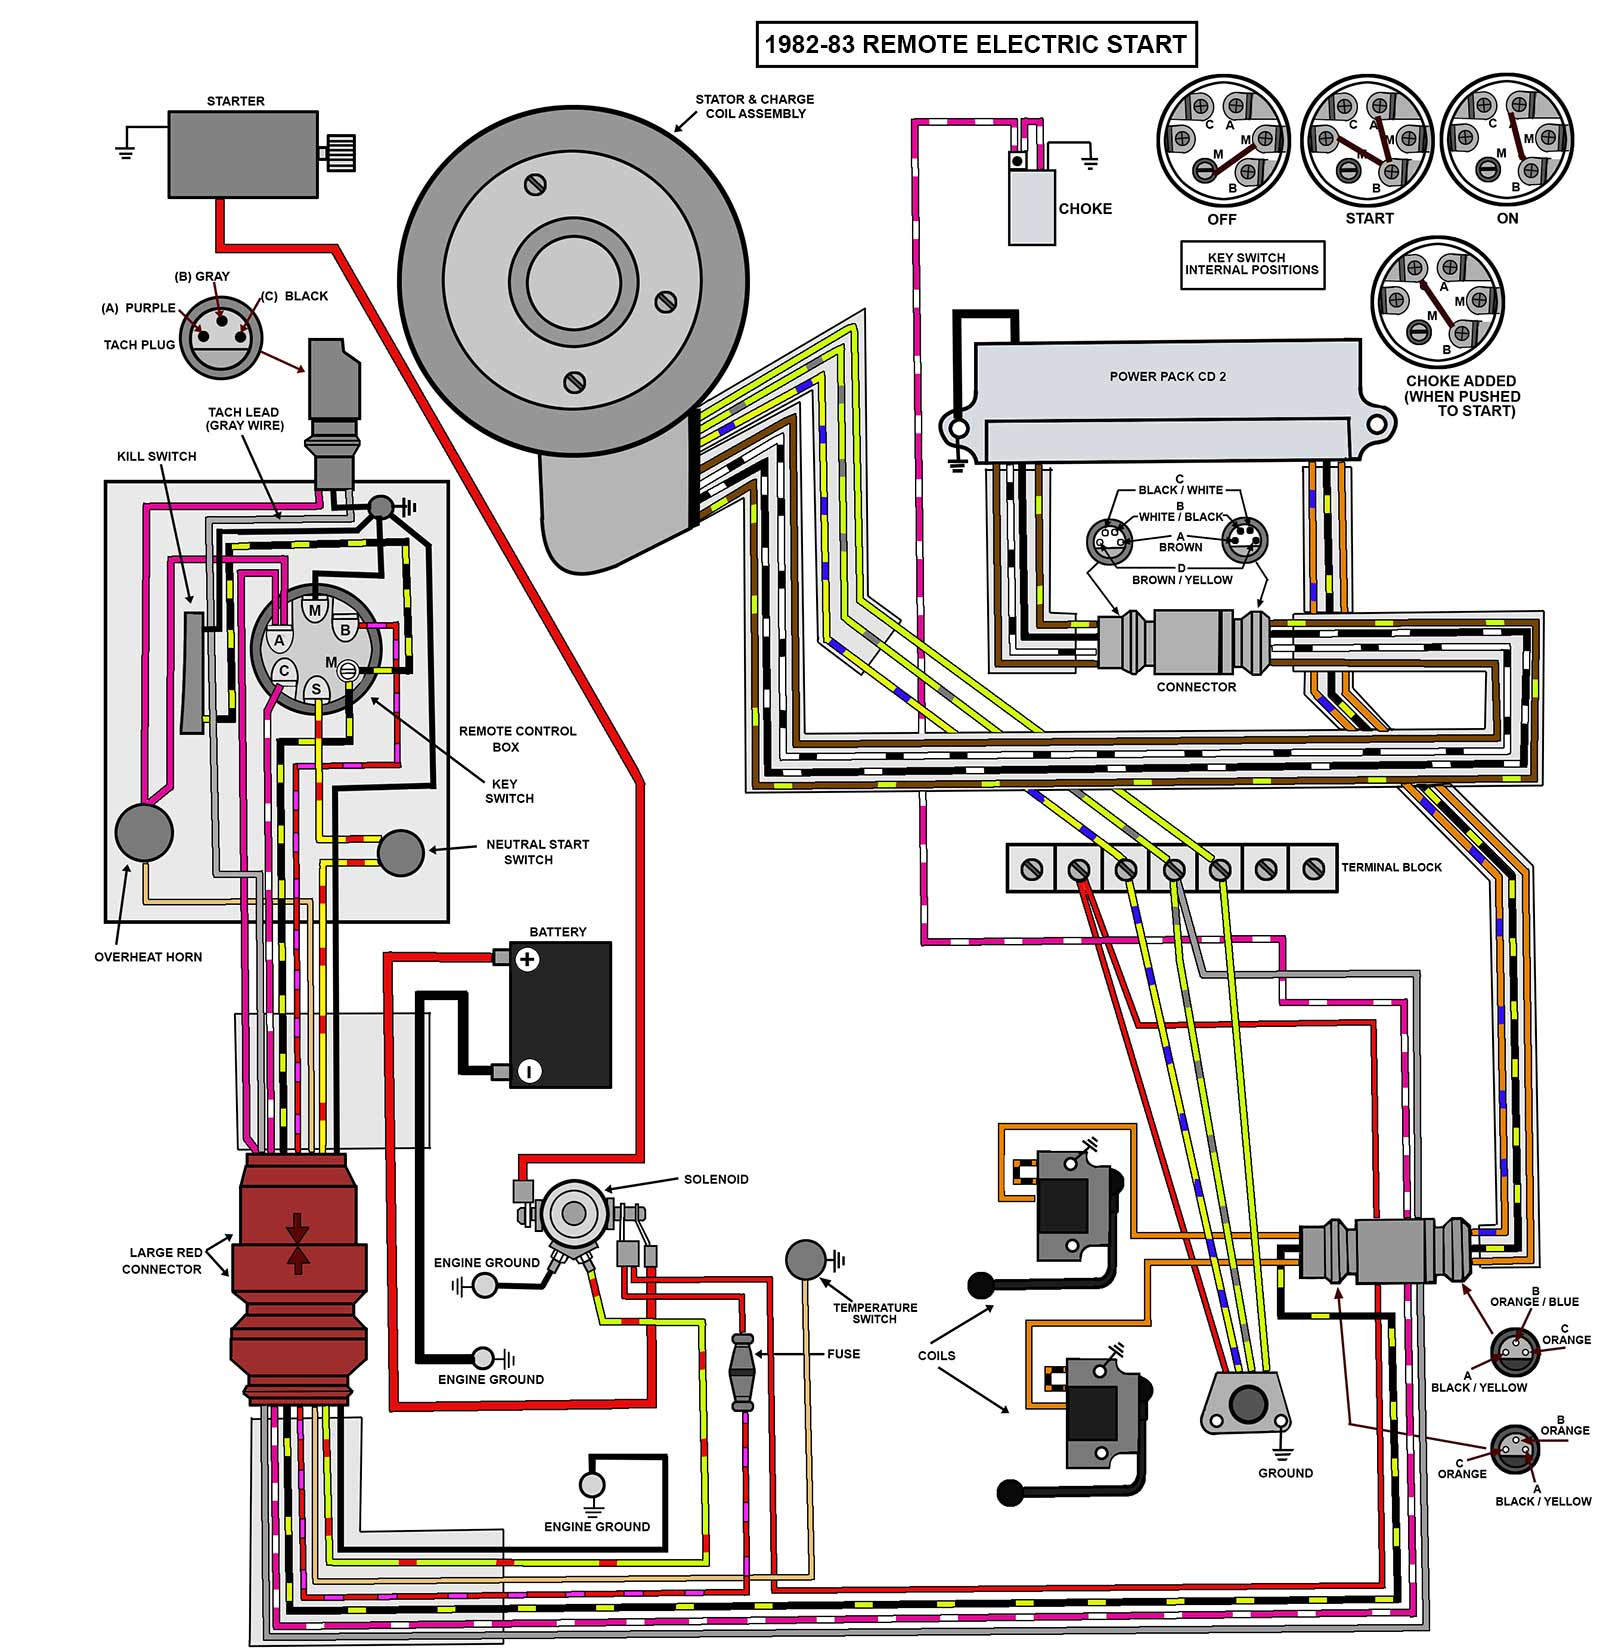 25_35_82 83_elec remote hp wiring diagram wiring harness diagram \u2022 wiring diagrams j  at bayanpartner.co